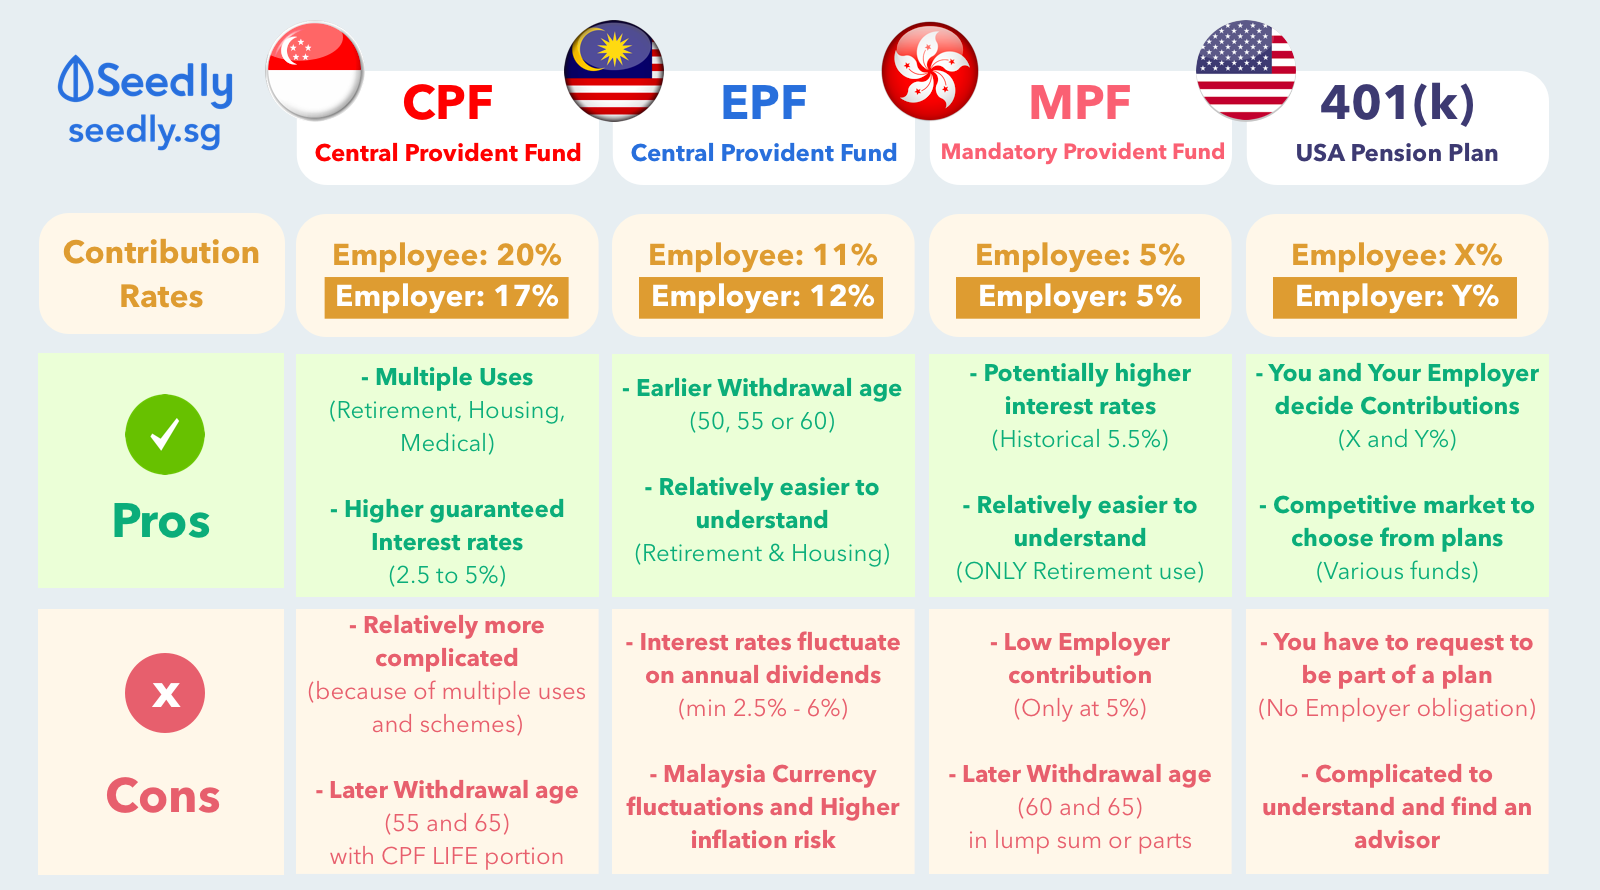 NEW_Singapore CPF, EPF, MPF, 401k